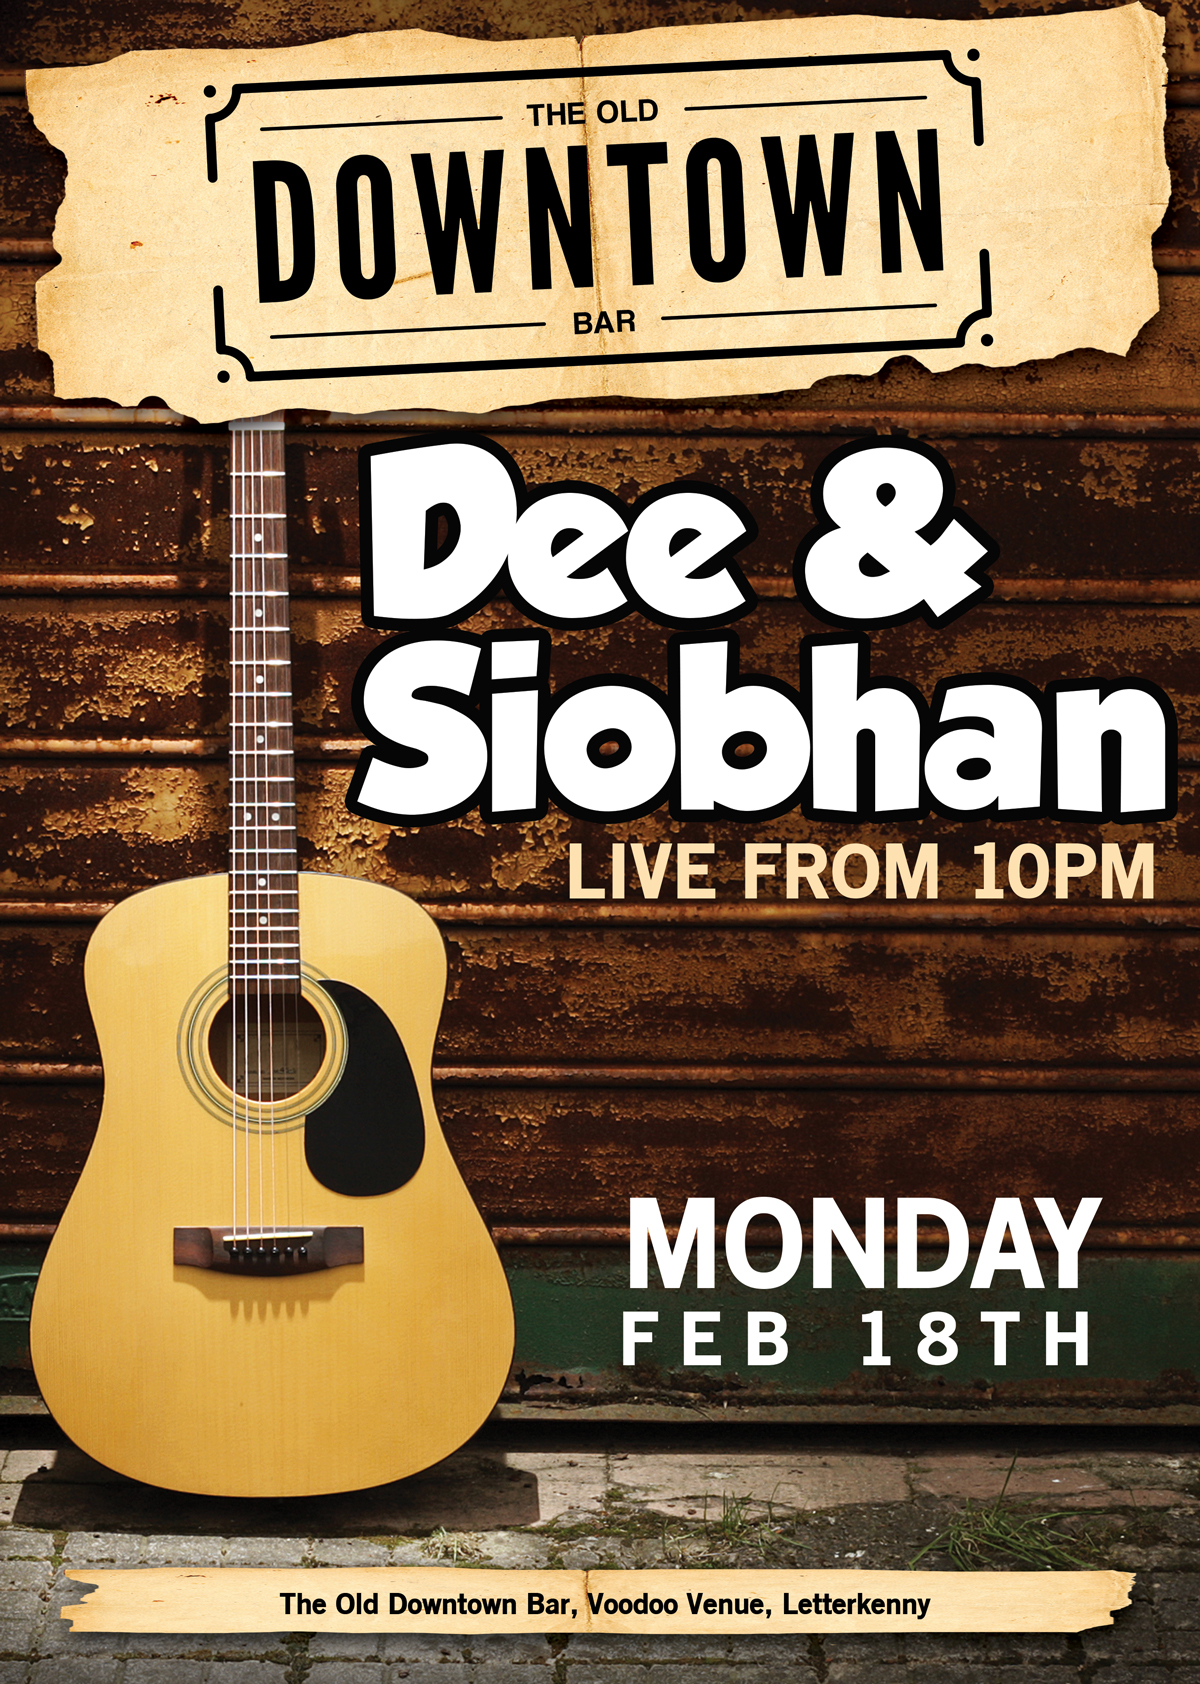 VOODOO-VENUE---the-old-downtown-dee-and-siobhan---mon-feb-18-2019.jpg